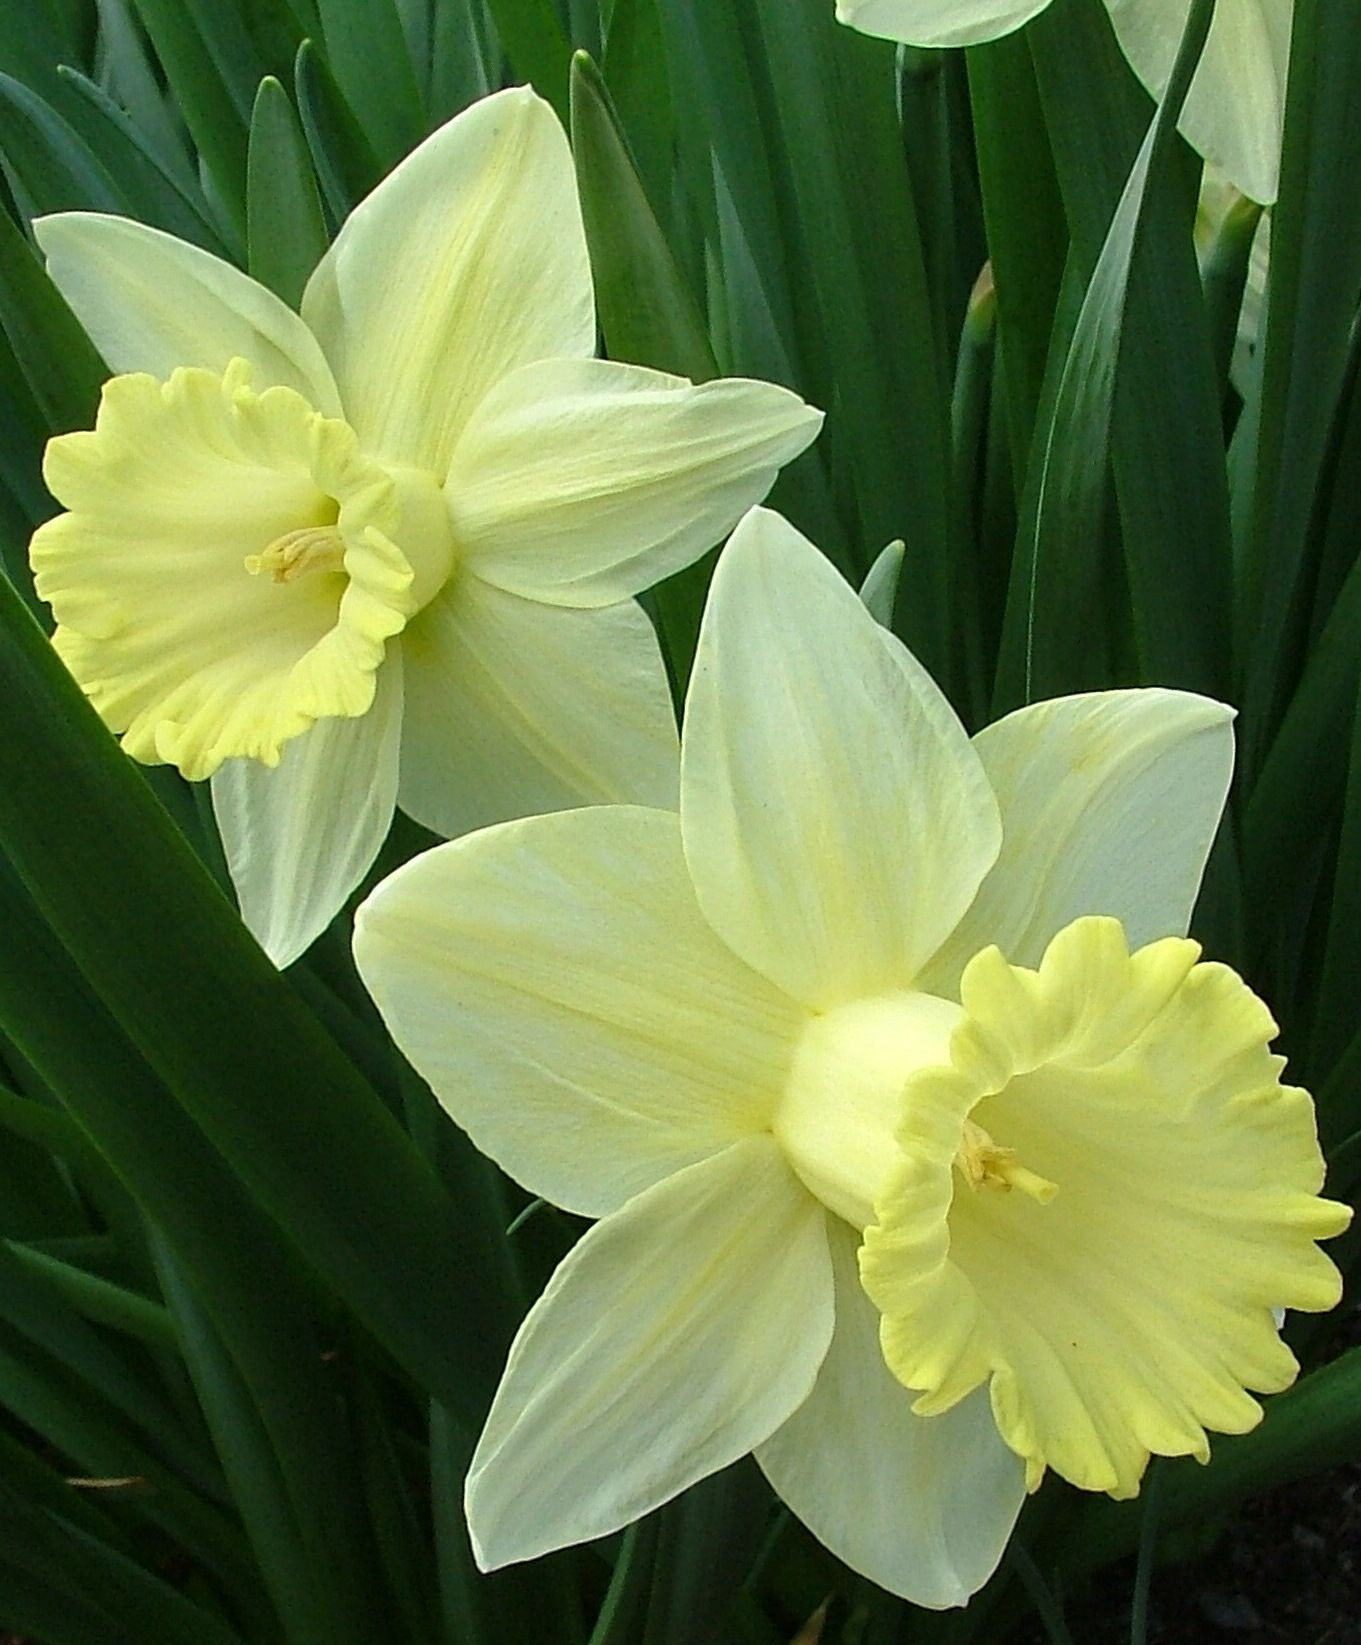 Narcissus December birth flower in turqoise December birthstone 2 for both of my daughters